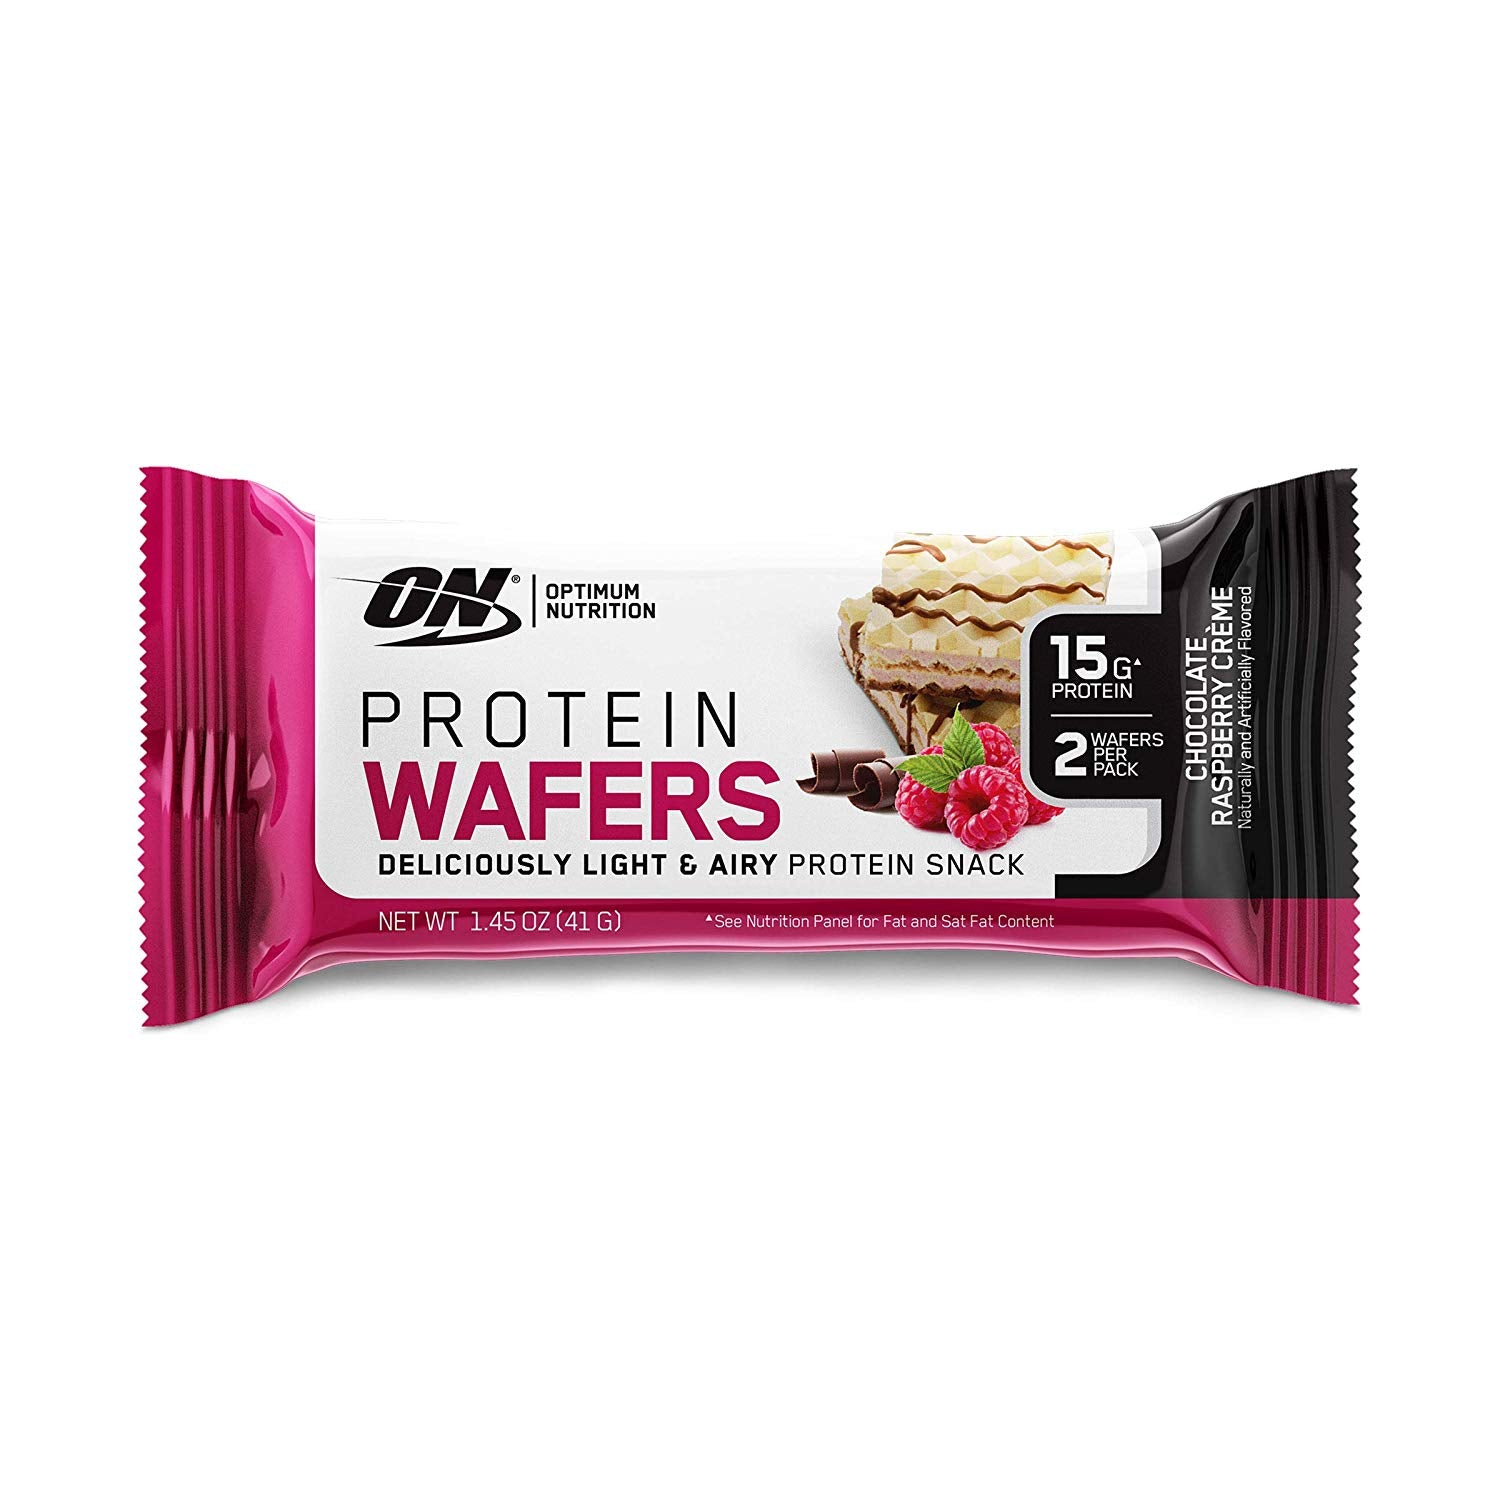 OPTIMUM NUTRITION PROTEIN WAFERS!